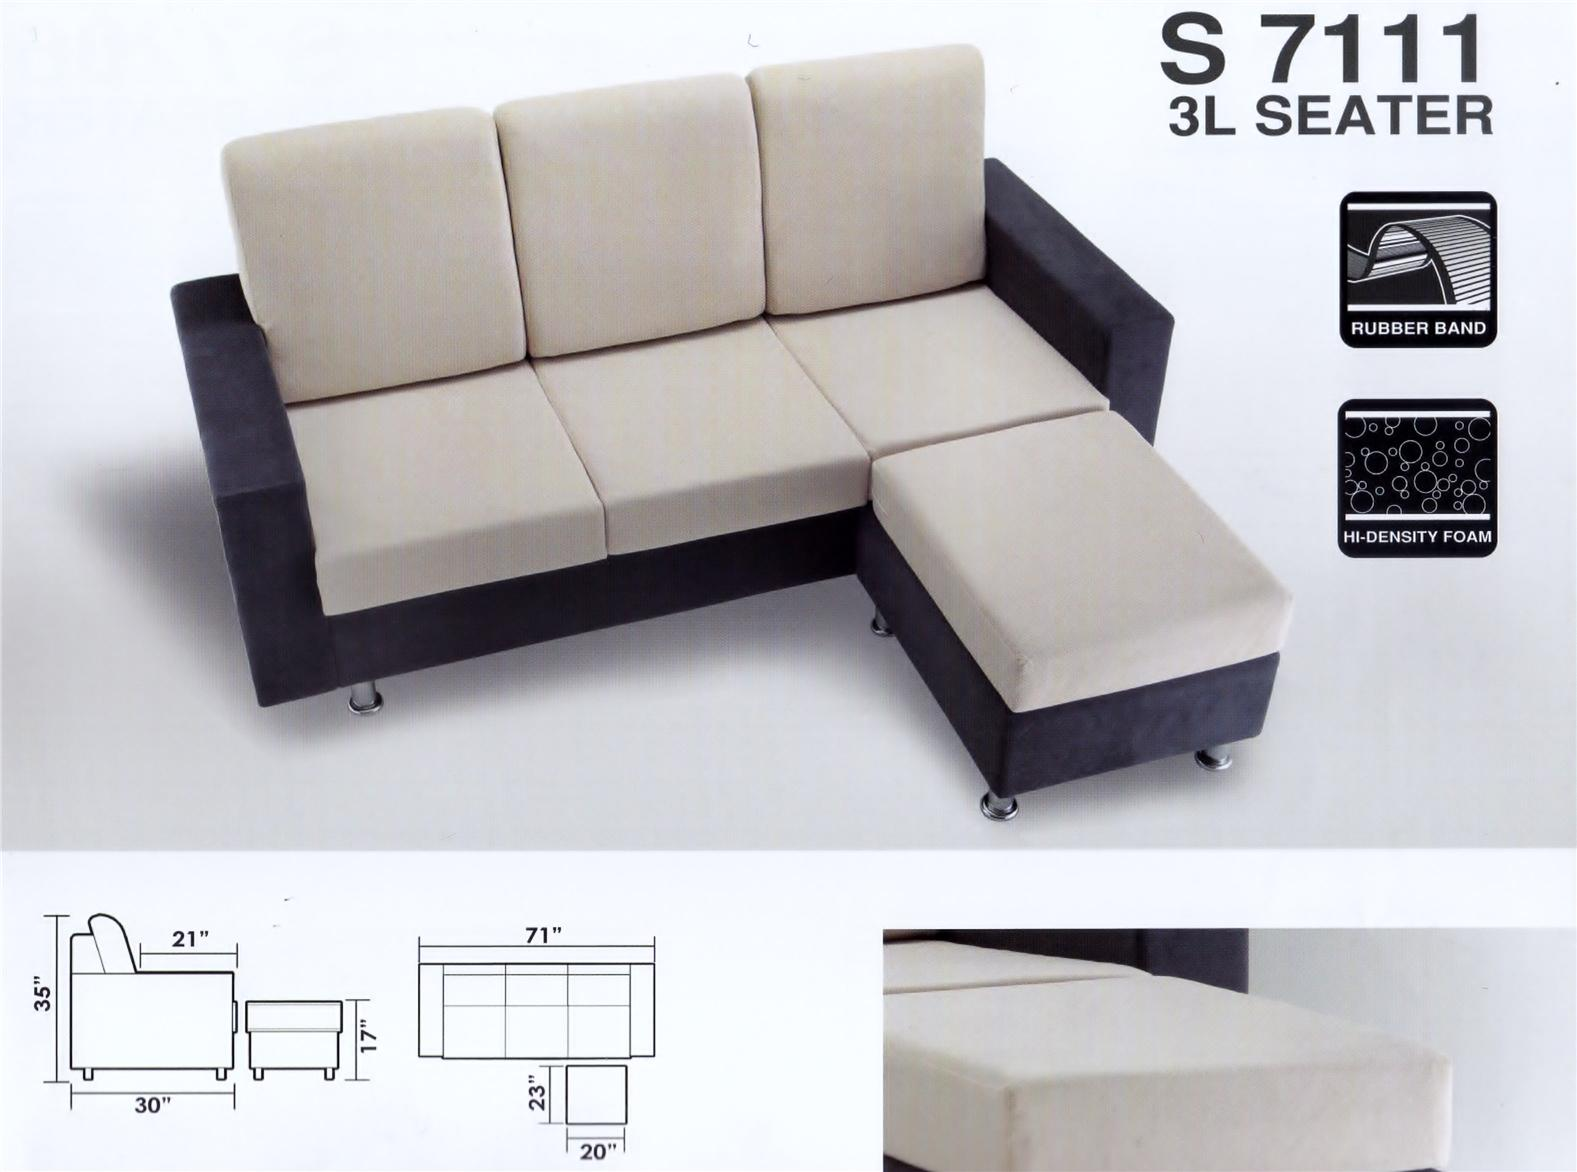 L-Shaped Sofa Chair